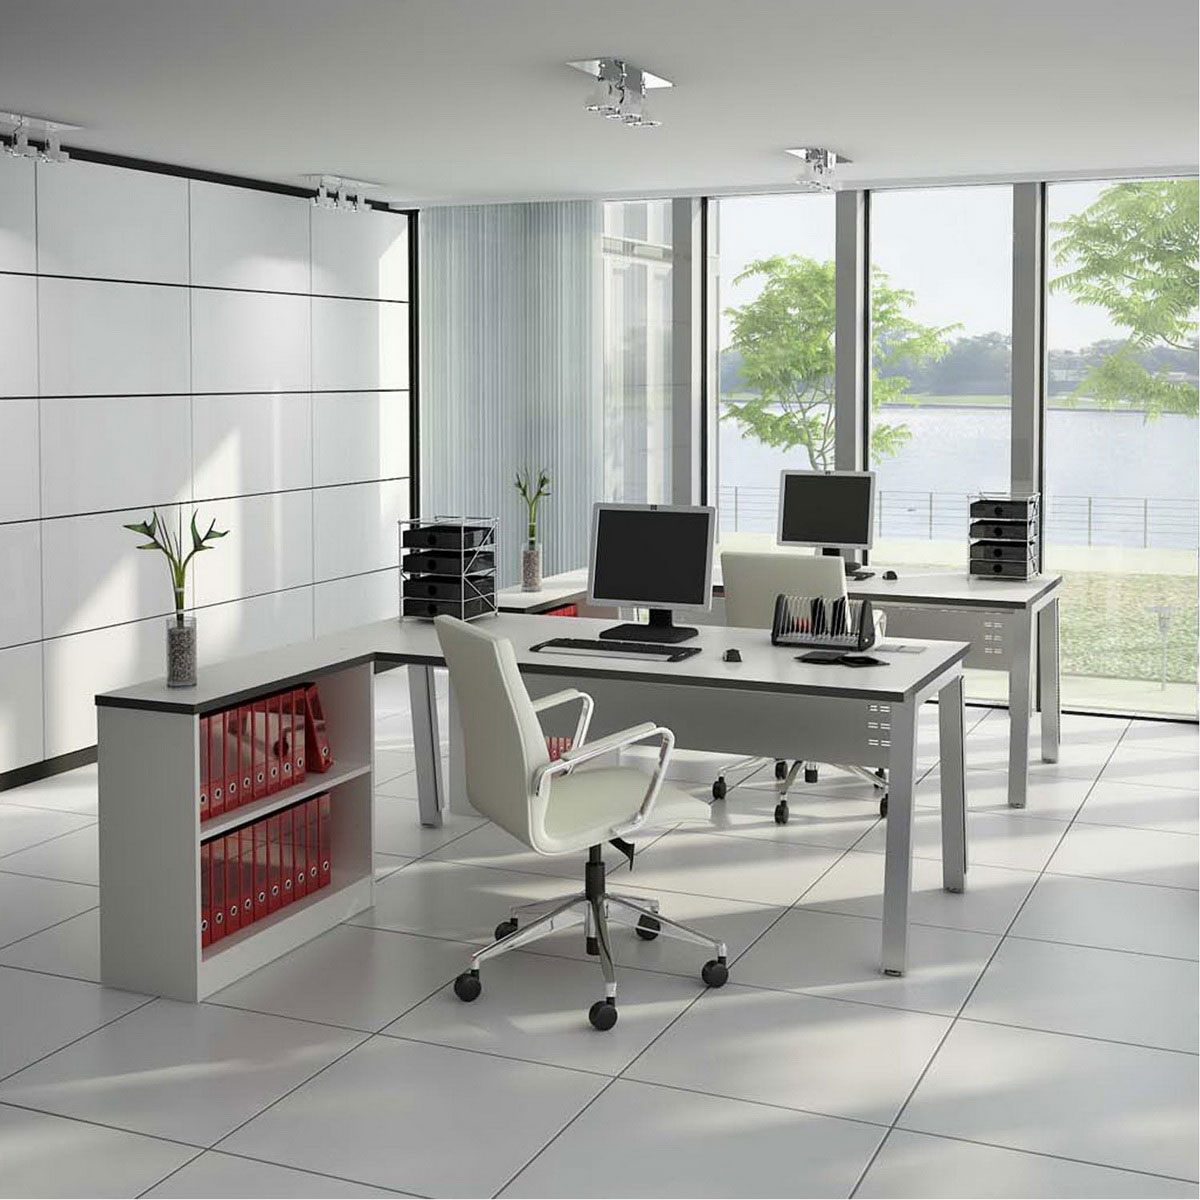 Office interior design dreams house furniture Home office designer furniture